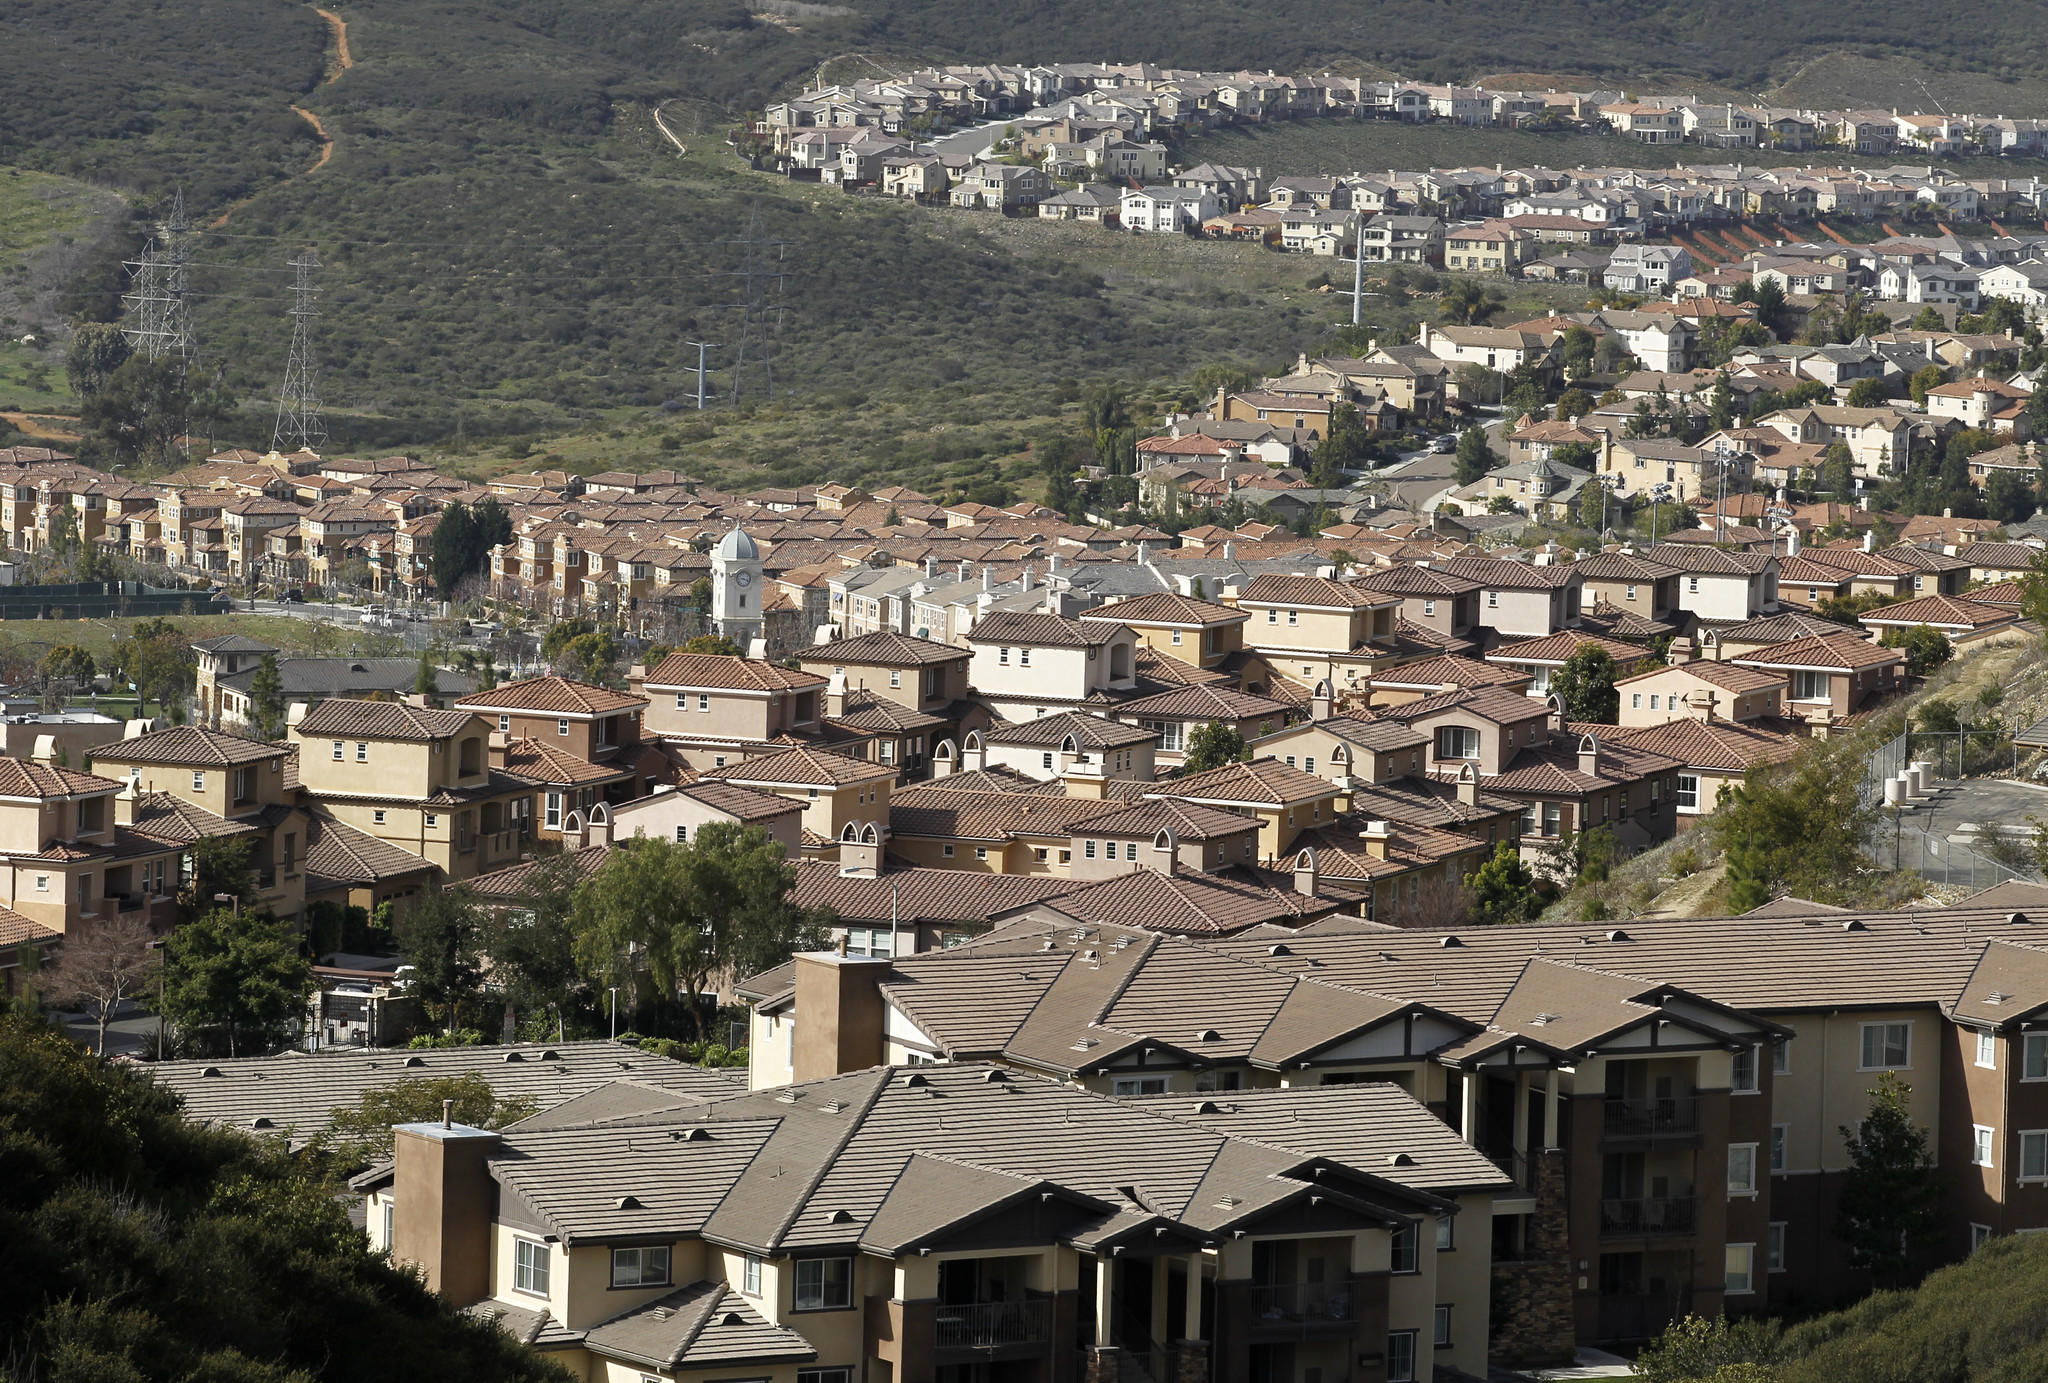 A sprawl of newly built housing is shown in San Marcos, Calif.